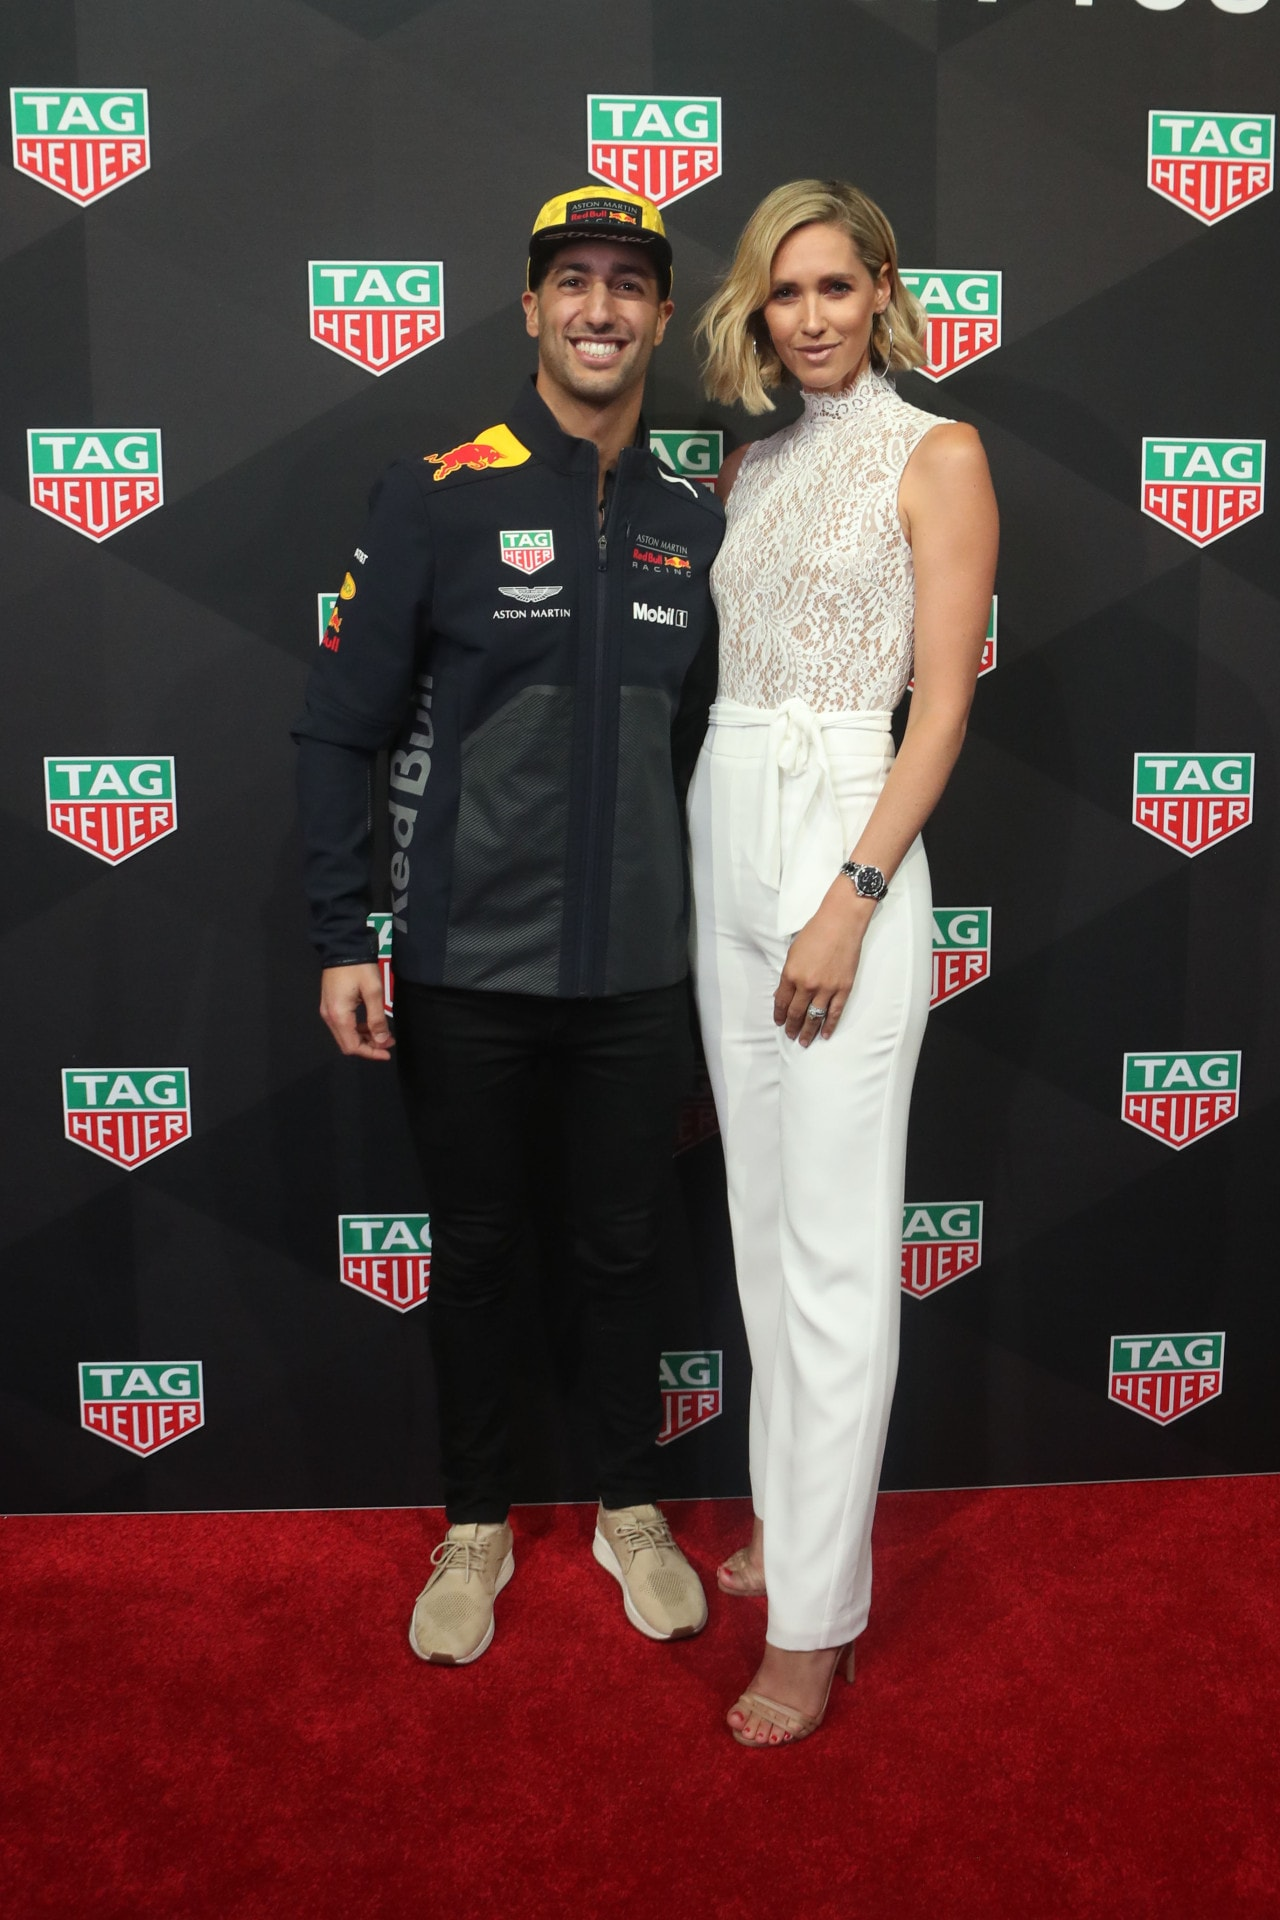 Daniel Ricciardo and Nikki Phillips at the TAG Heuer Grand Prix cocktail event. Image credit: Lucas Dawson